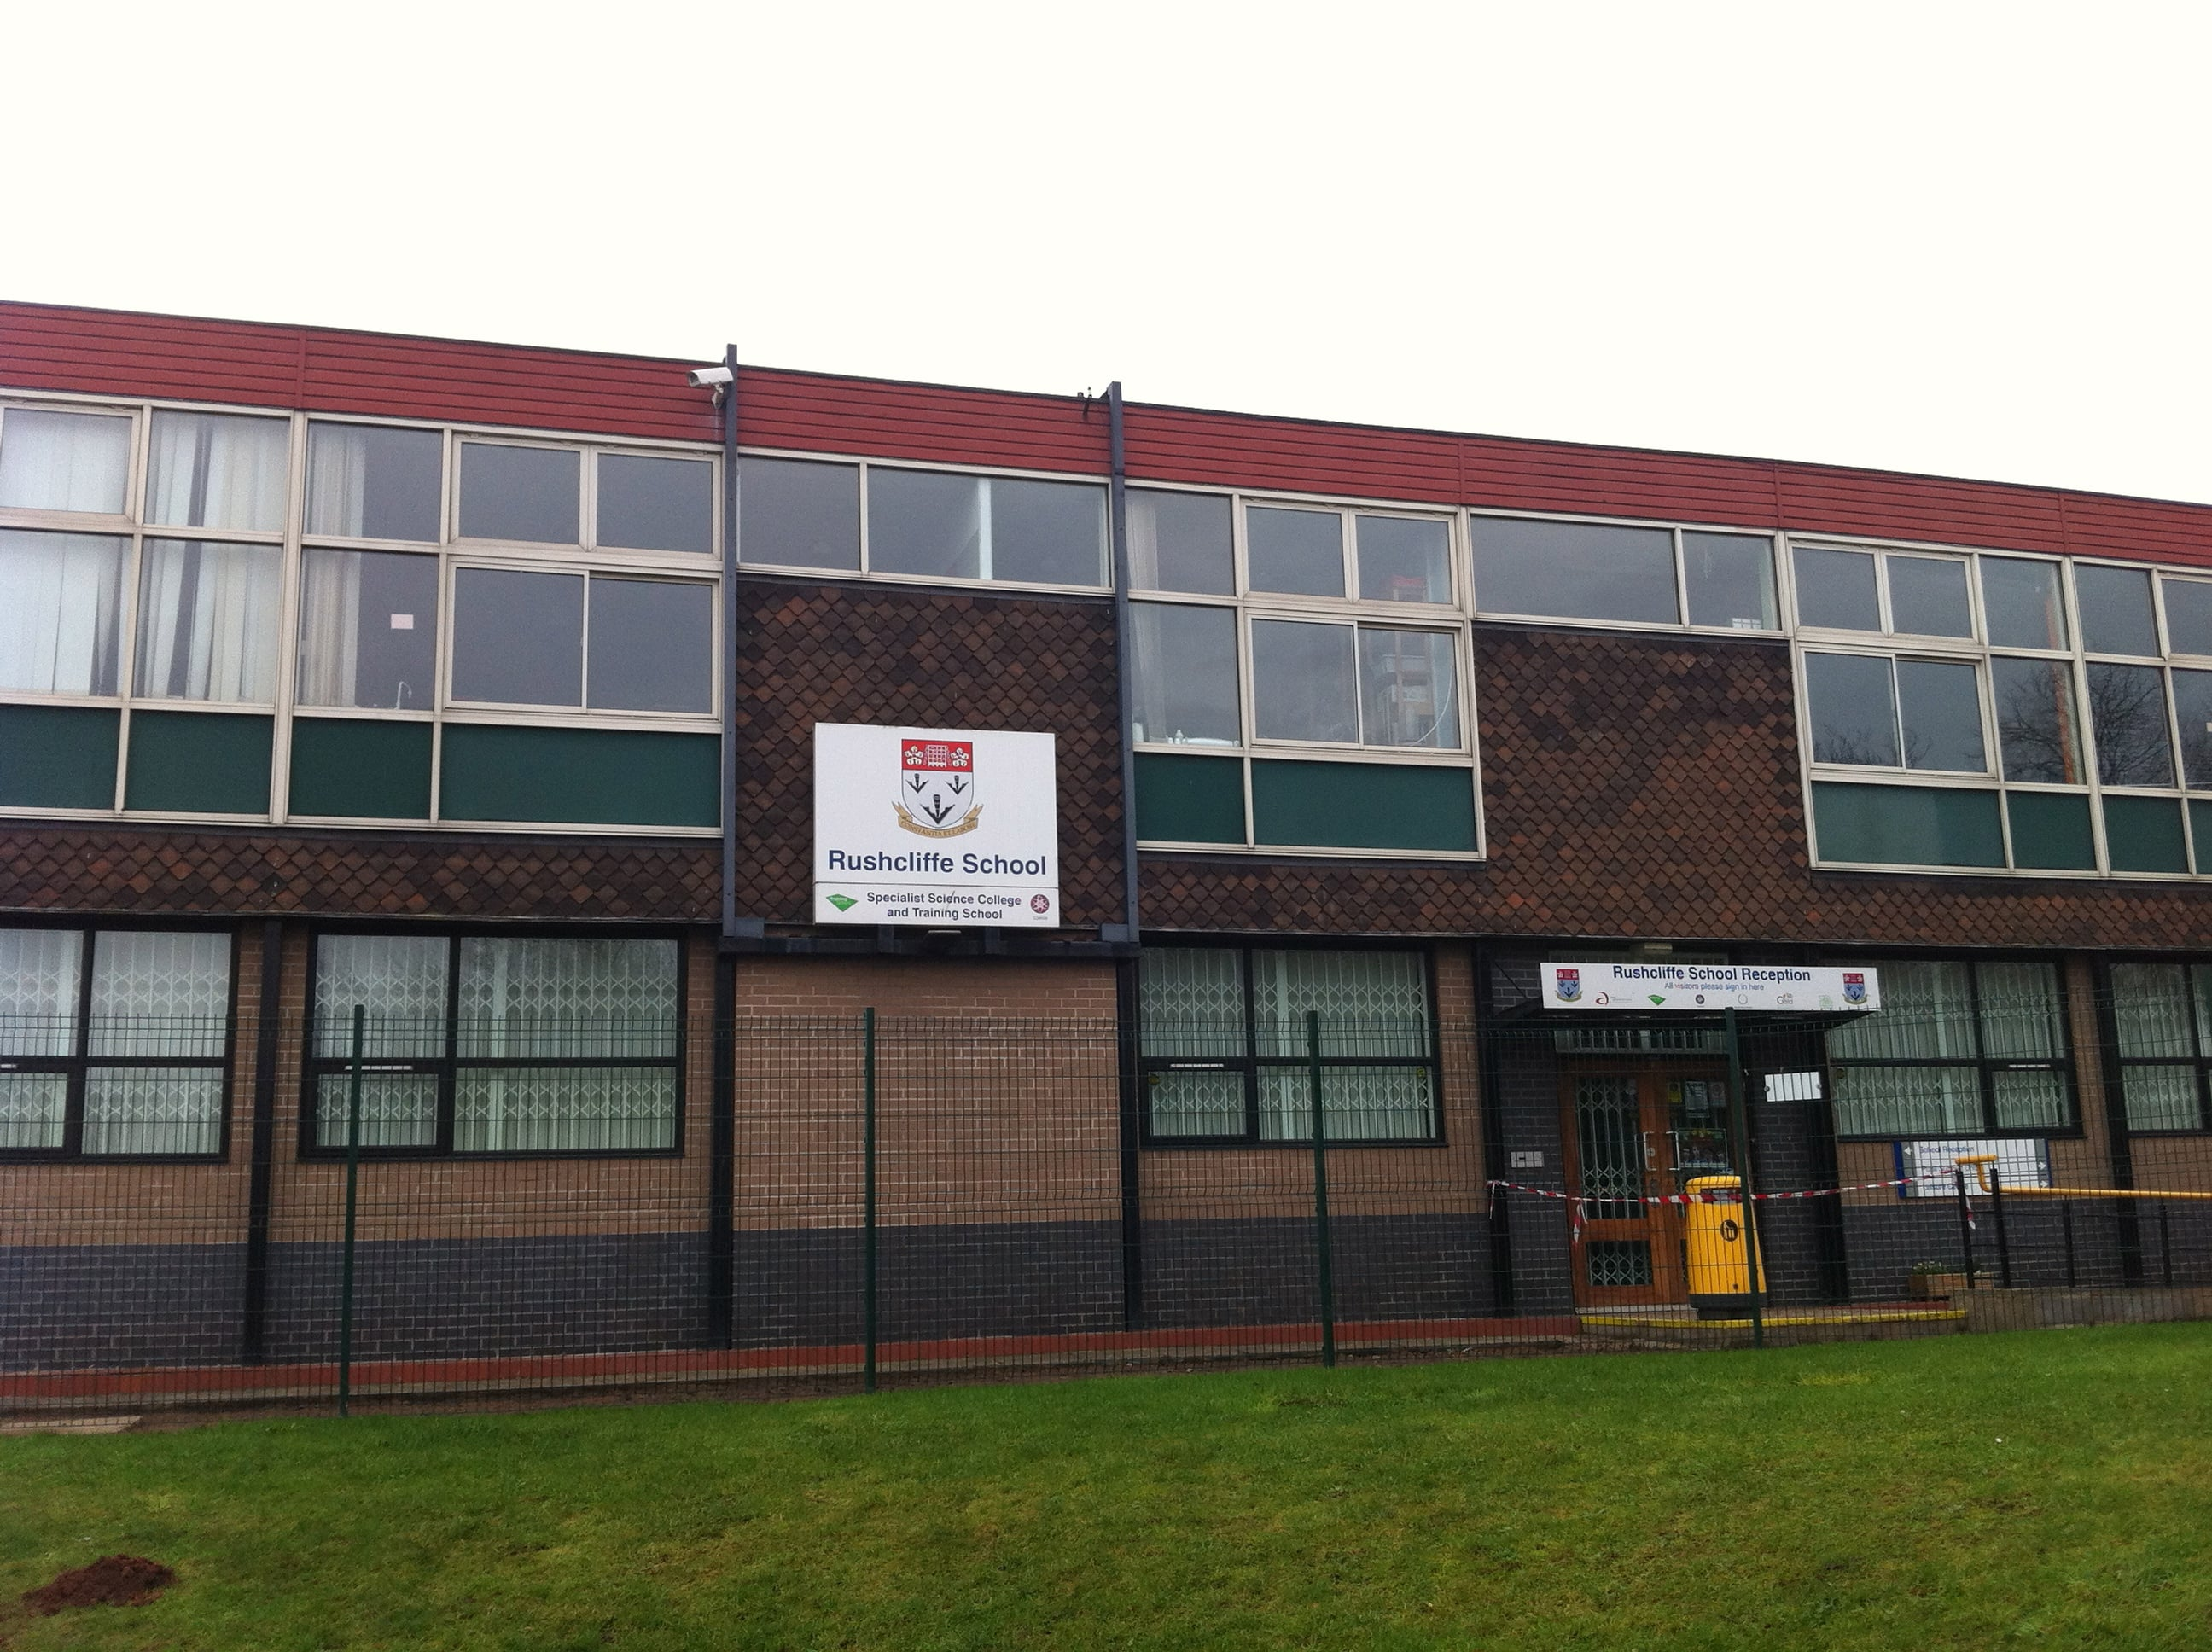 Rushcliffe School West Bridgford